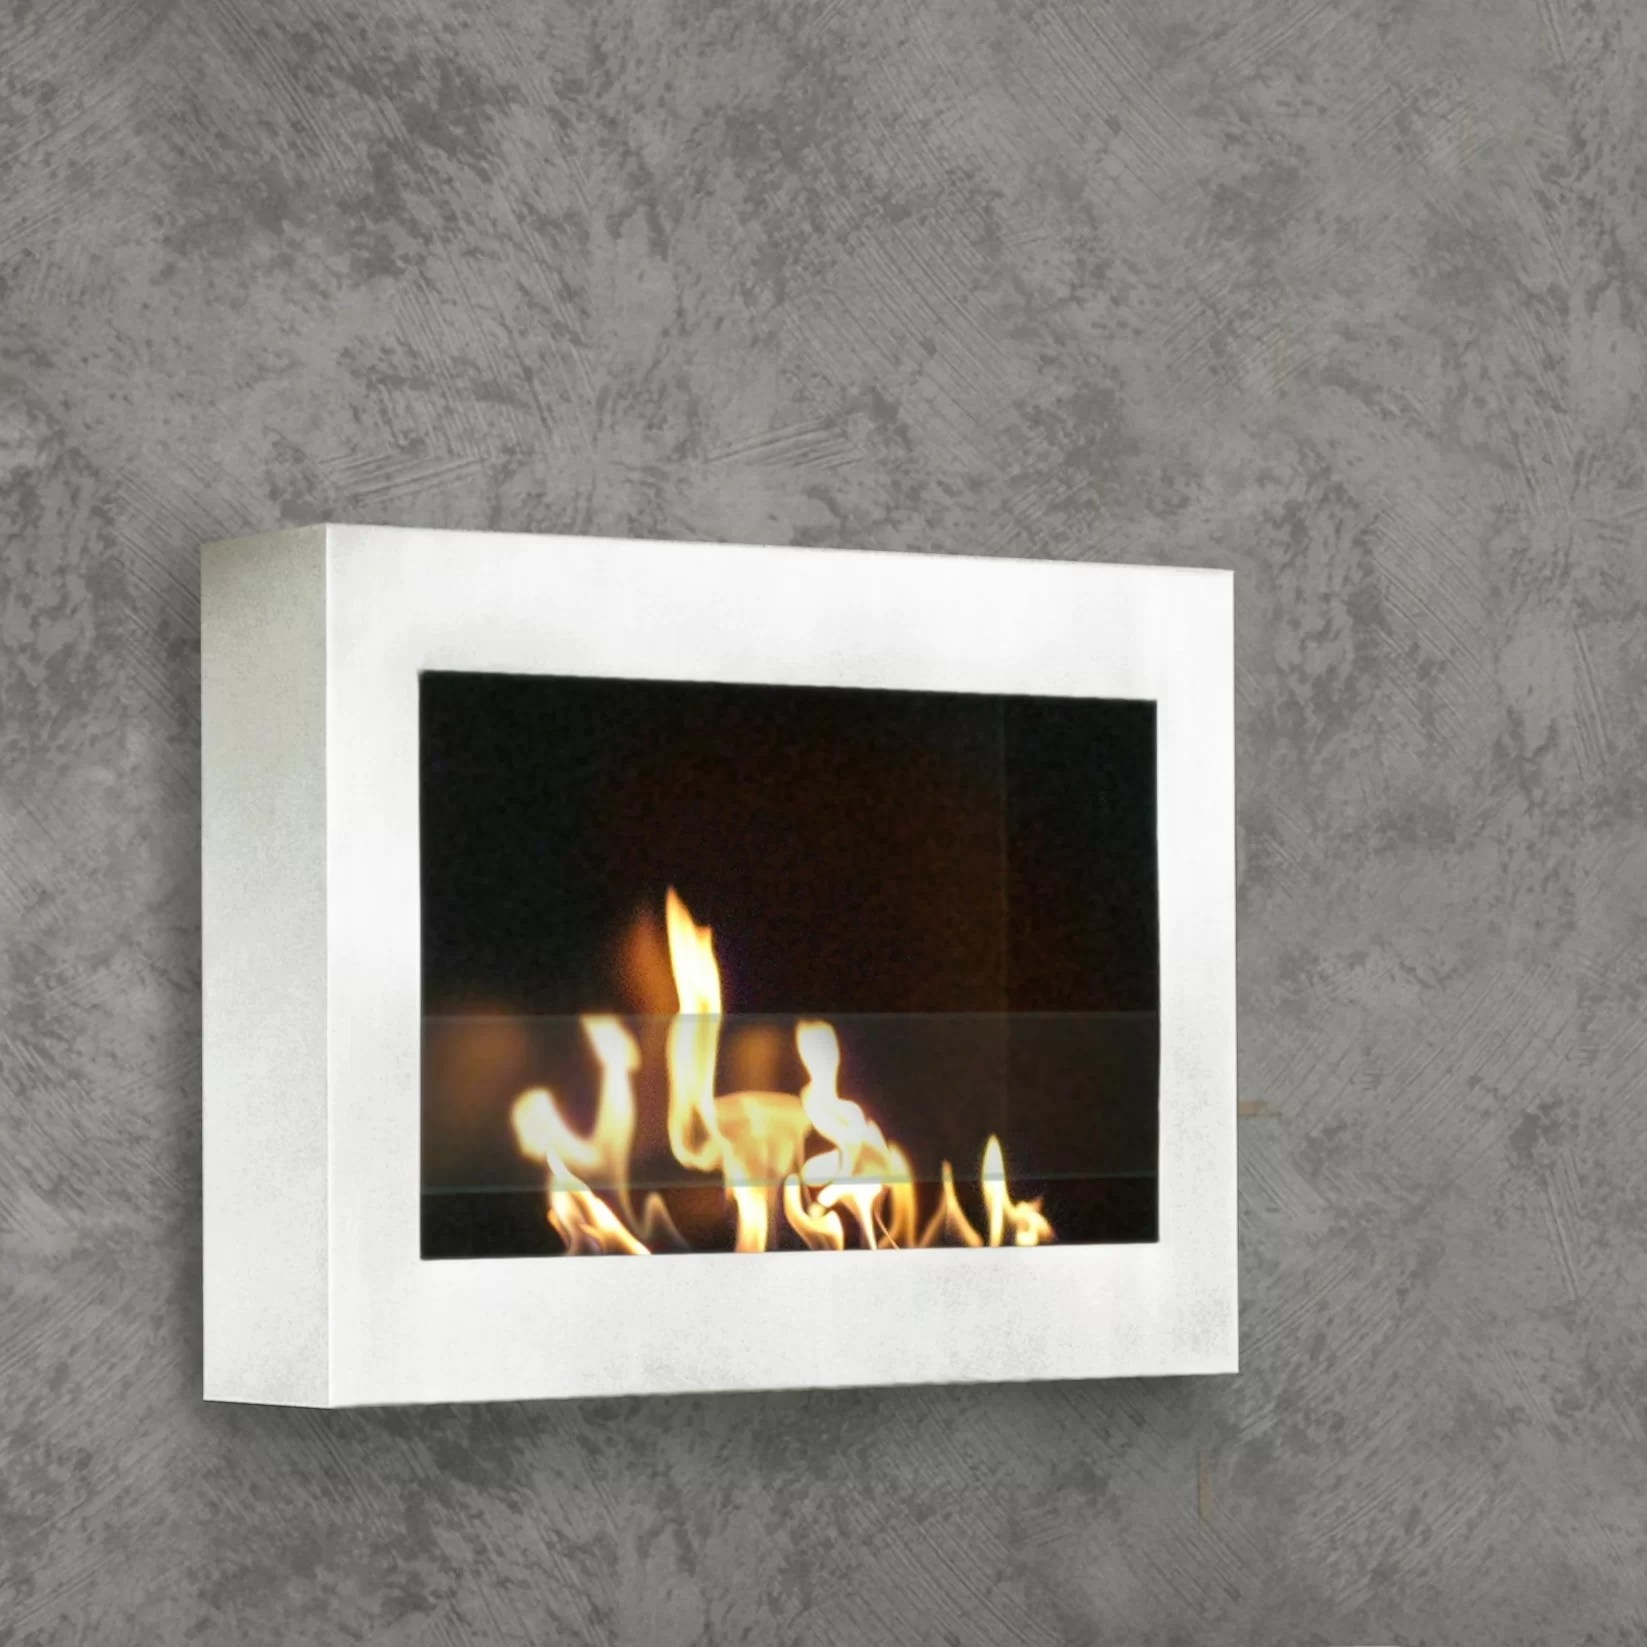 How To Operate A Fireplace Soho Wall Mounted Bio Ethanol Fireplace